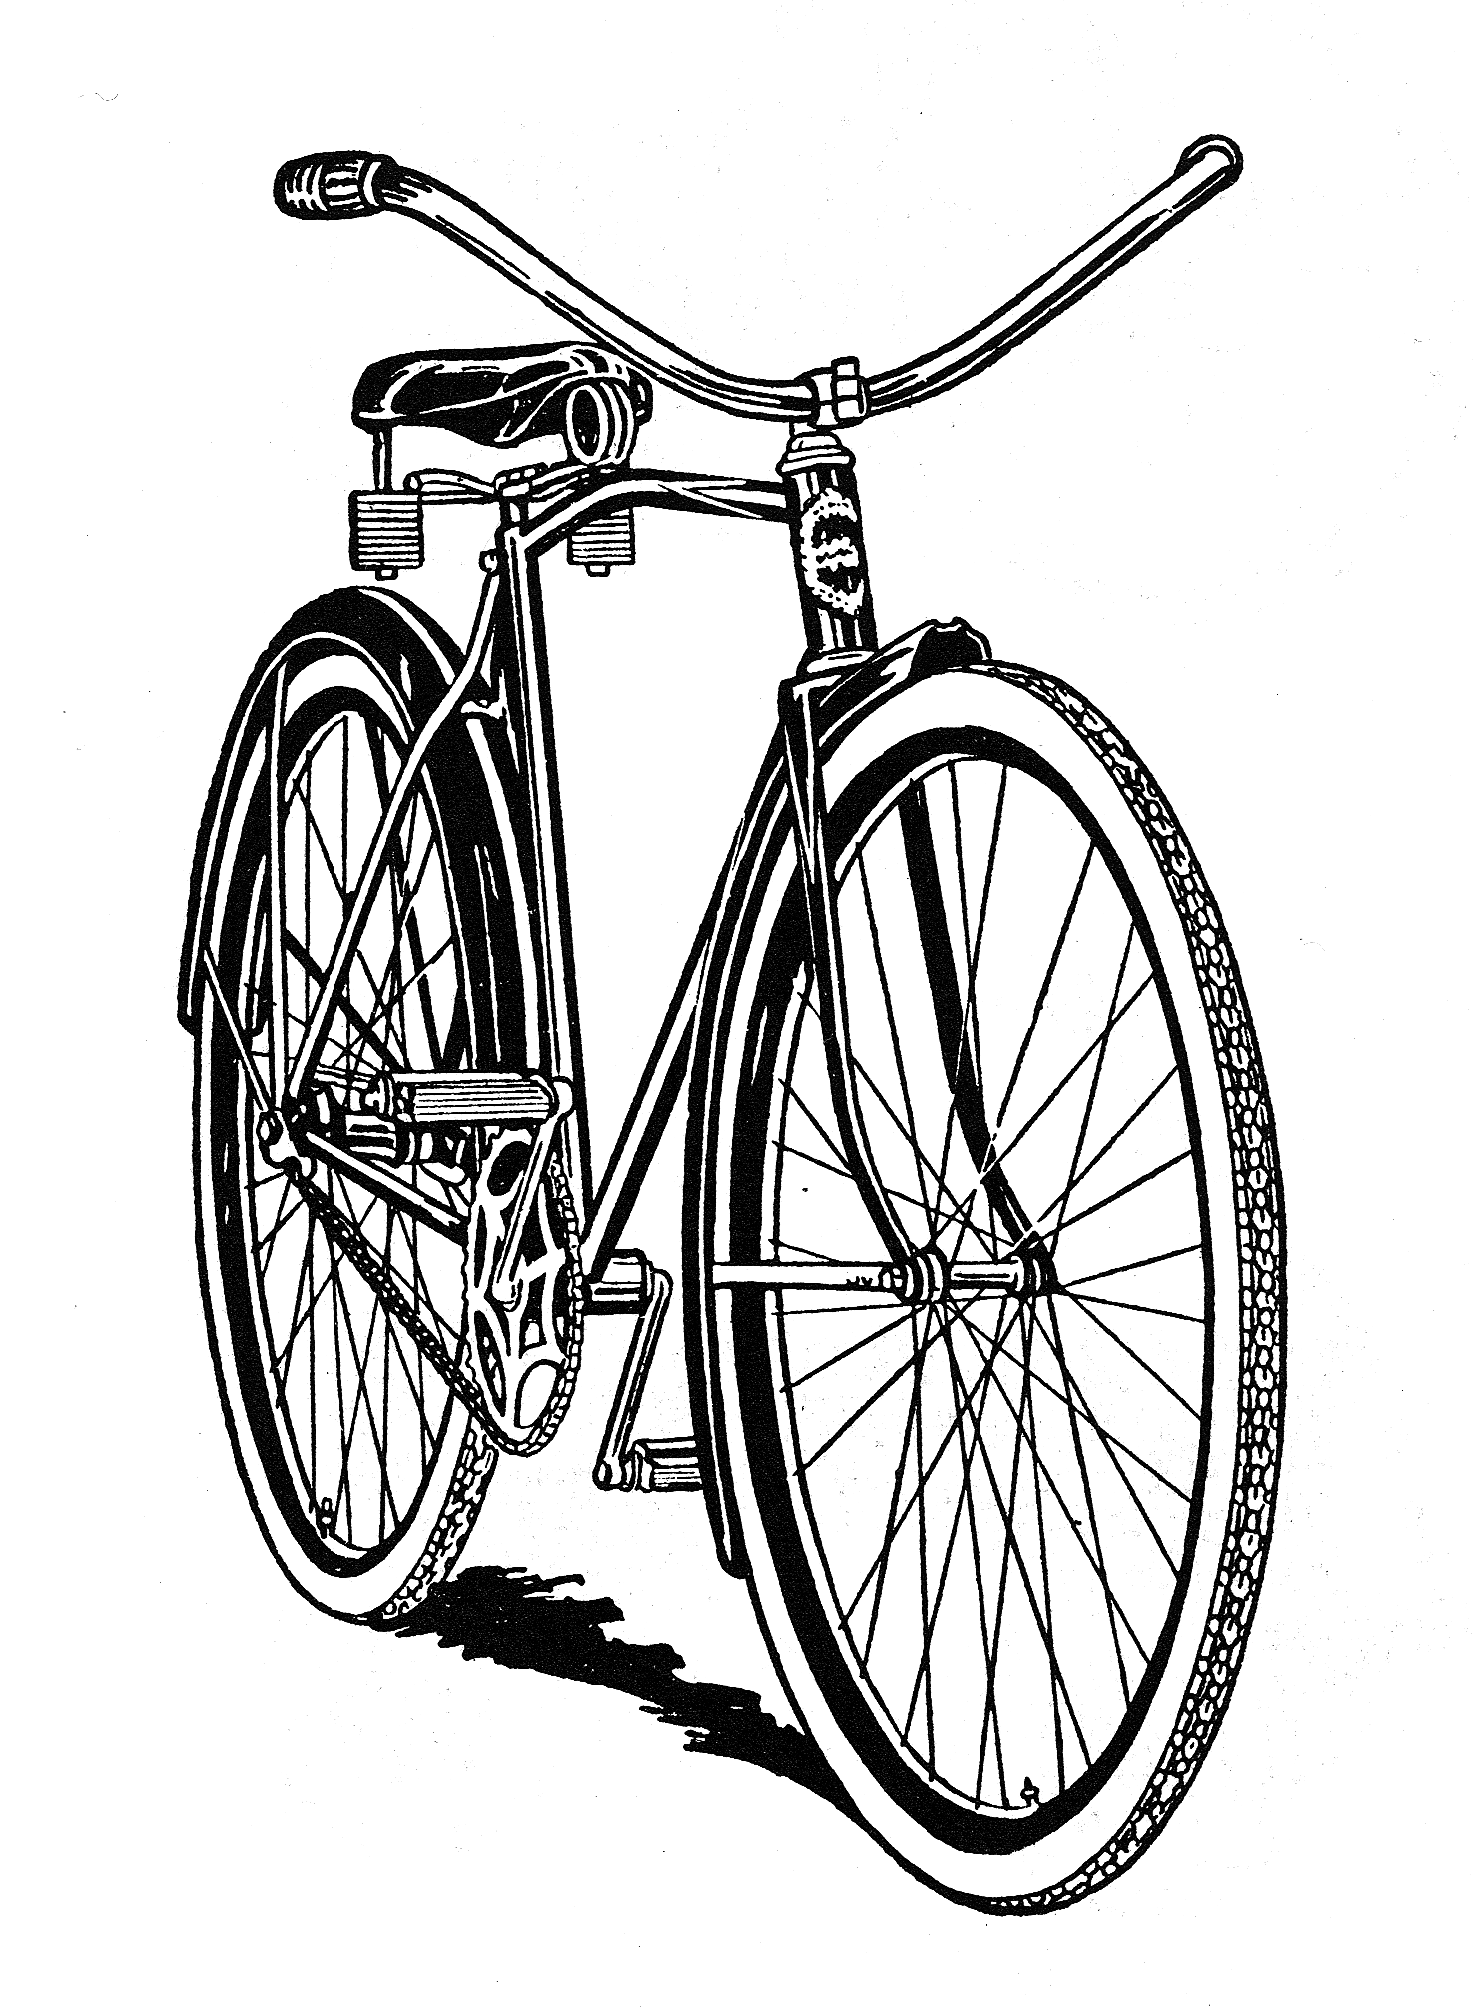 Public Domain Bicycle 2.